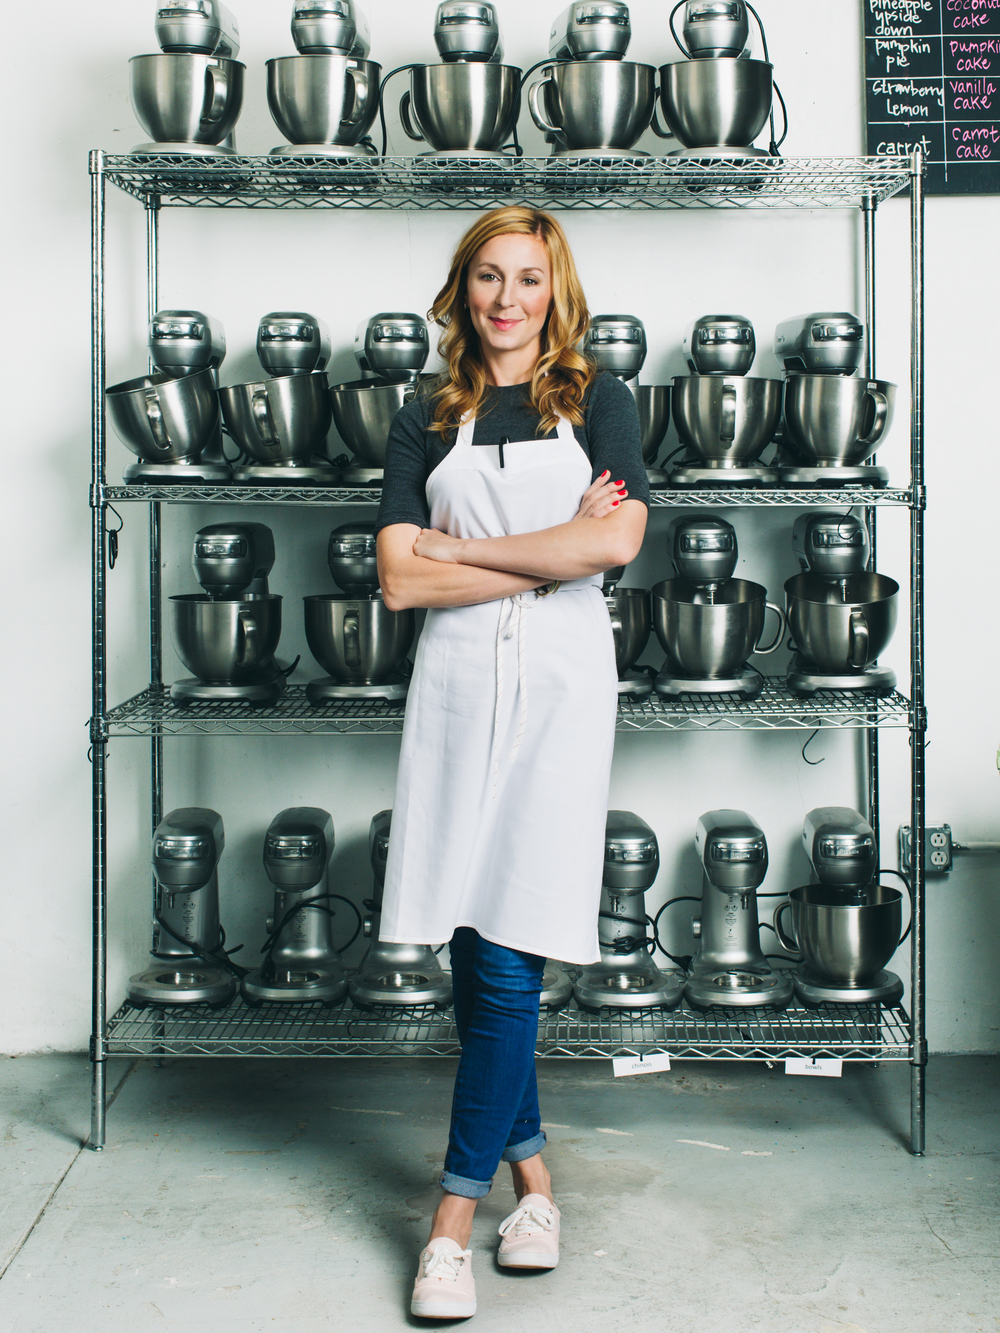 Christina Tosi, Chef and owner of Momofuku Milk Bar